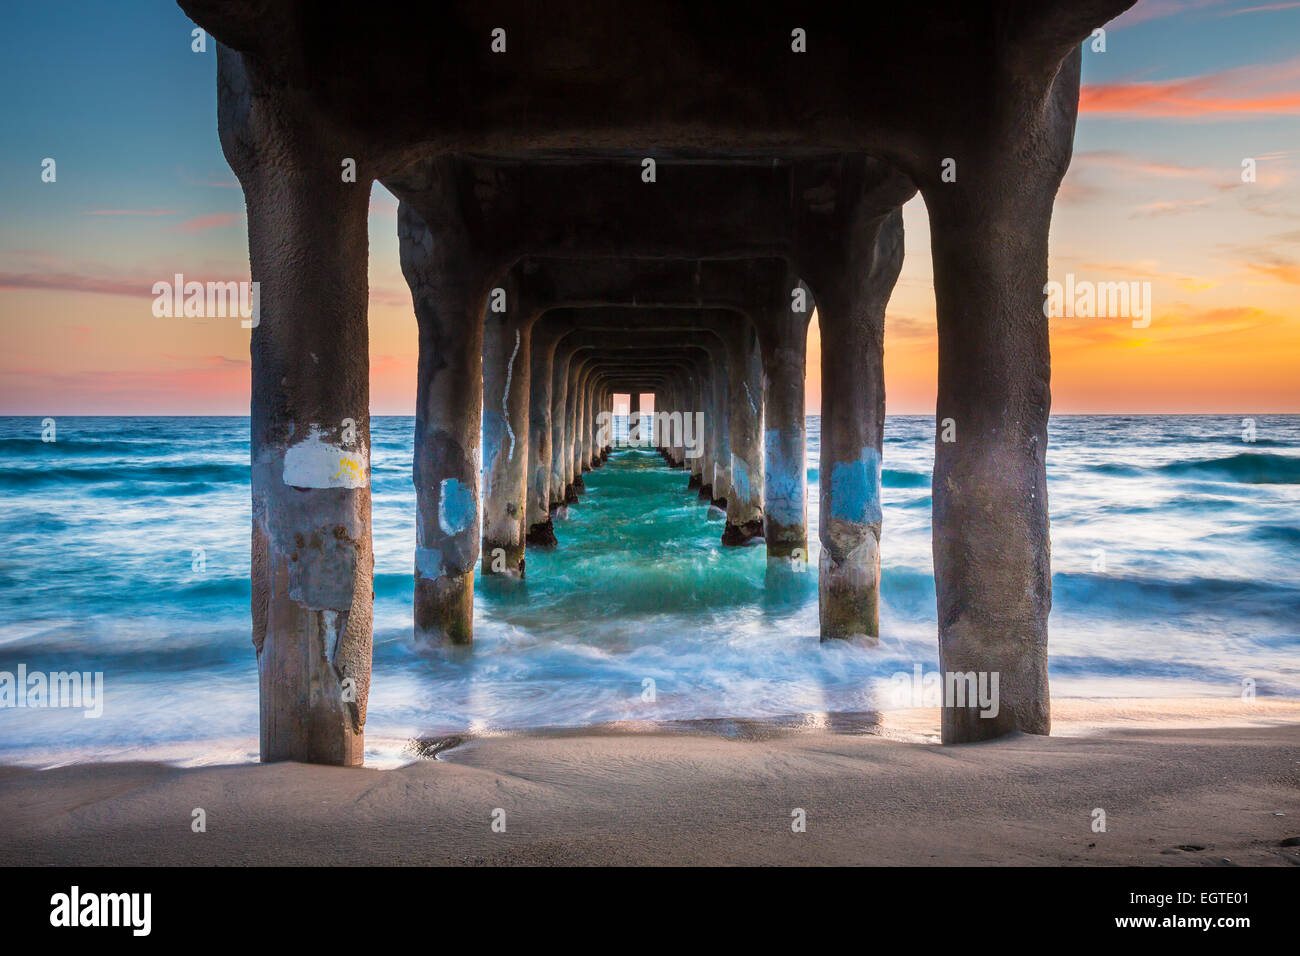 Manhattan Beach Wallpaper: The Manhattan Beach Pier Is A Pier Located In Manhattan